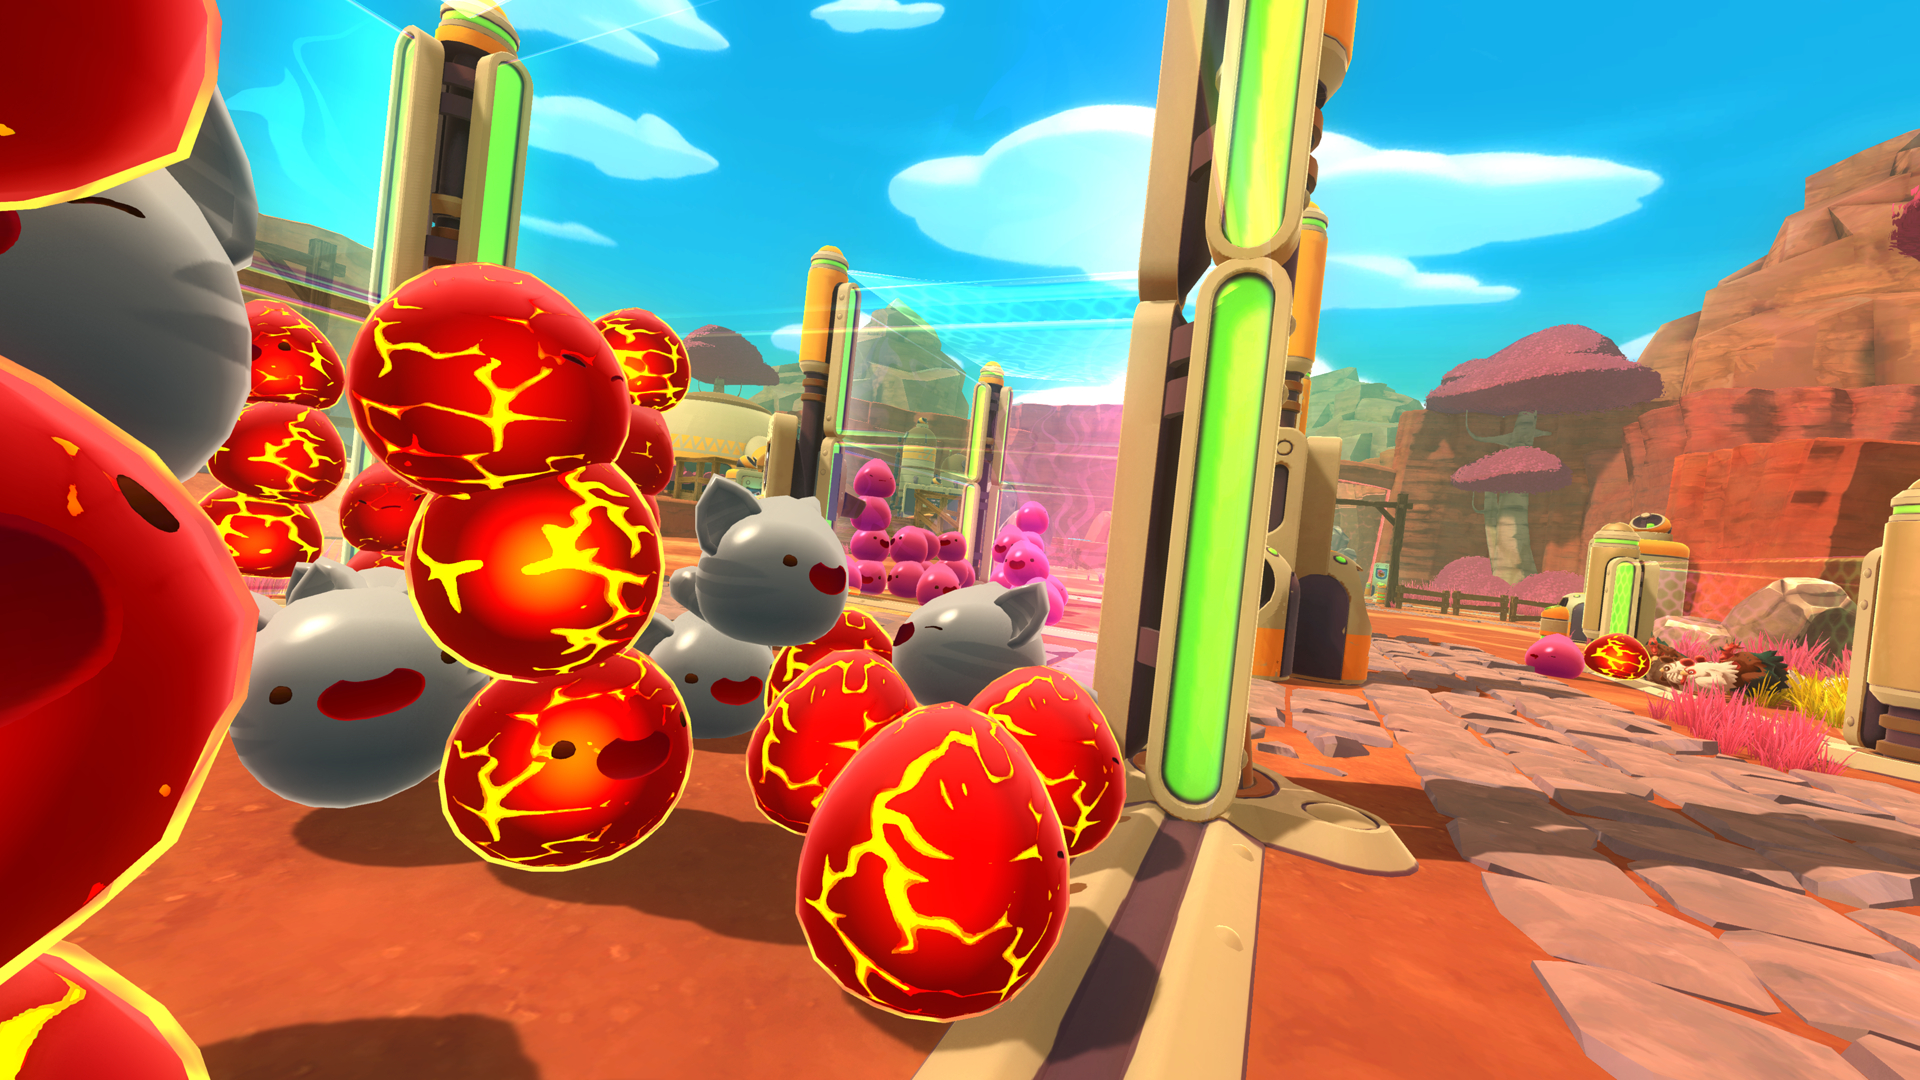 Slime Rancher for XB1, PC Reviews - OpenCritic